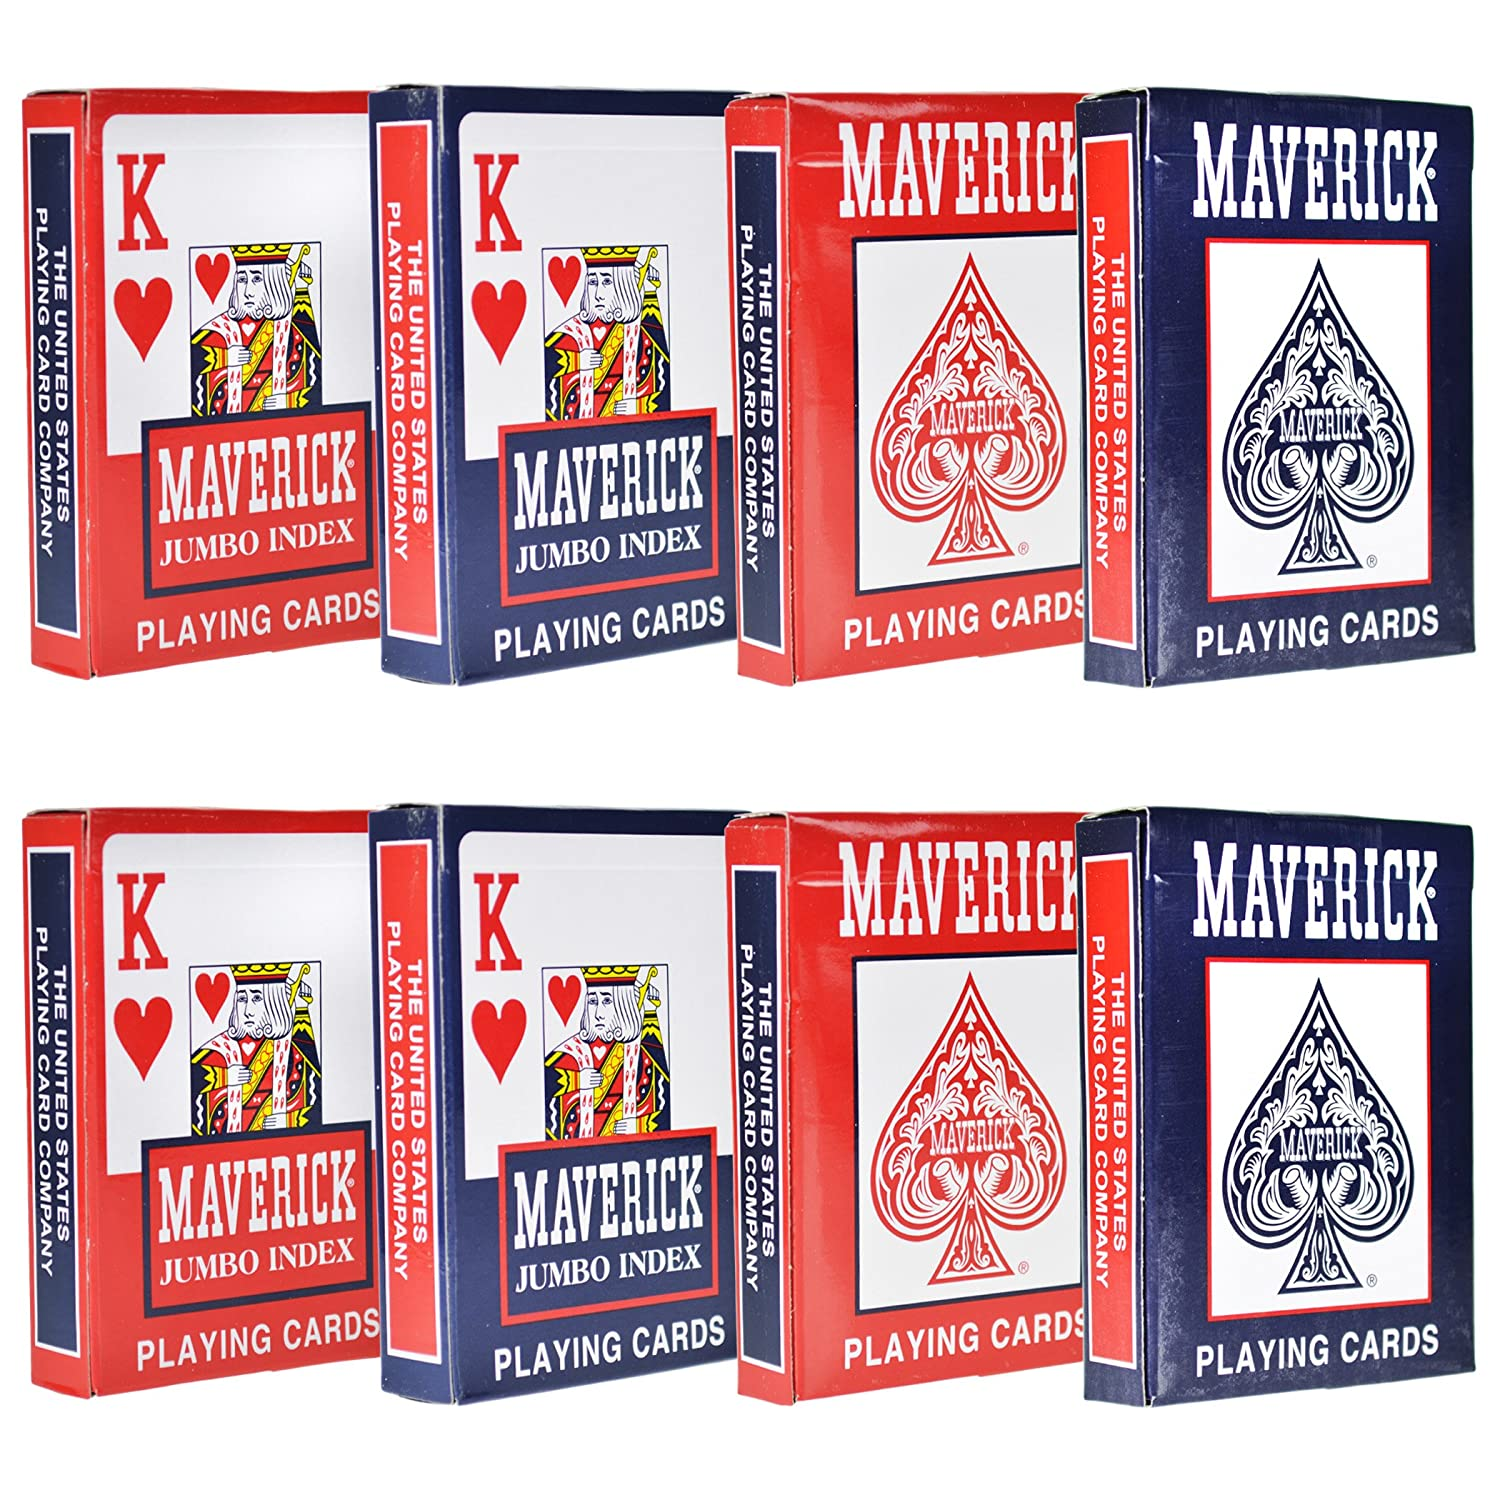 8 Decks of Playing Cards - (4 Standard Index / 4 Jumbo Index)